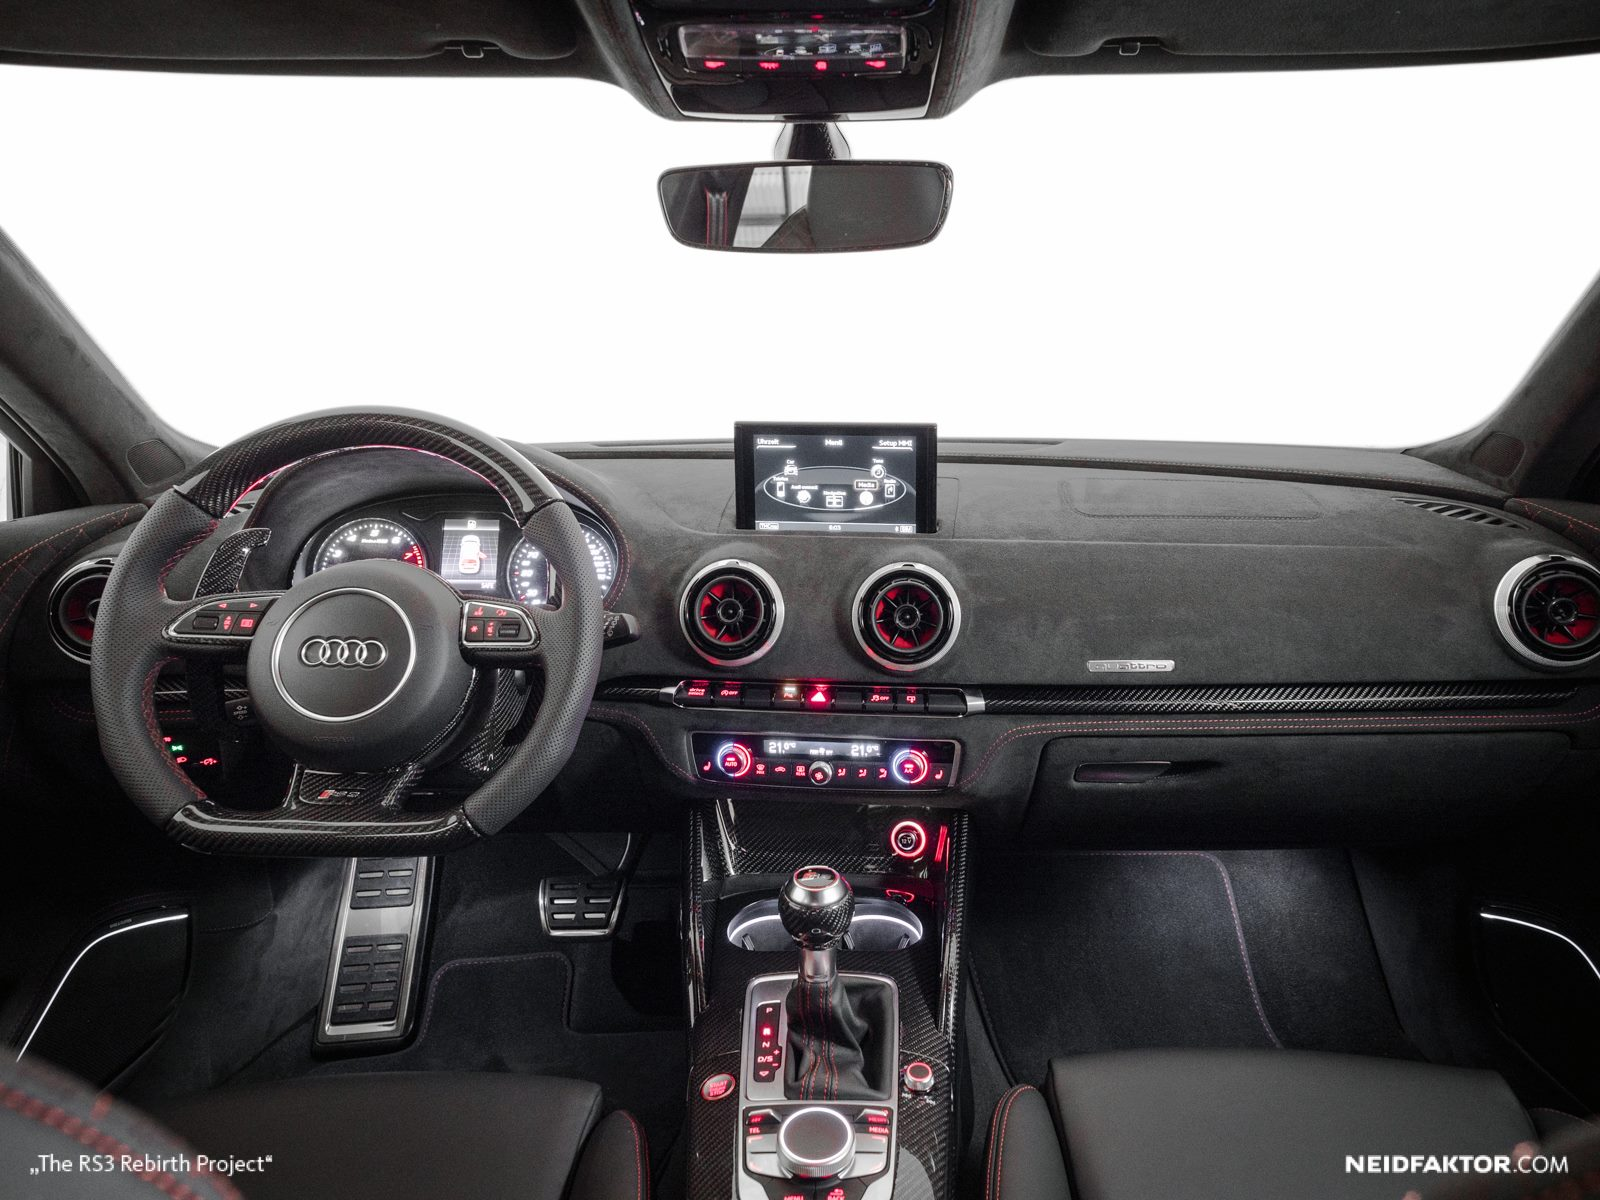 2016 Audi Q5 >> New Audi RS3 Gets Carbon Fiber and Alcantara Interior from Neidfaktor - autoevolution